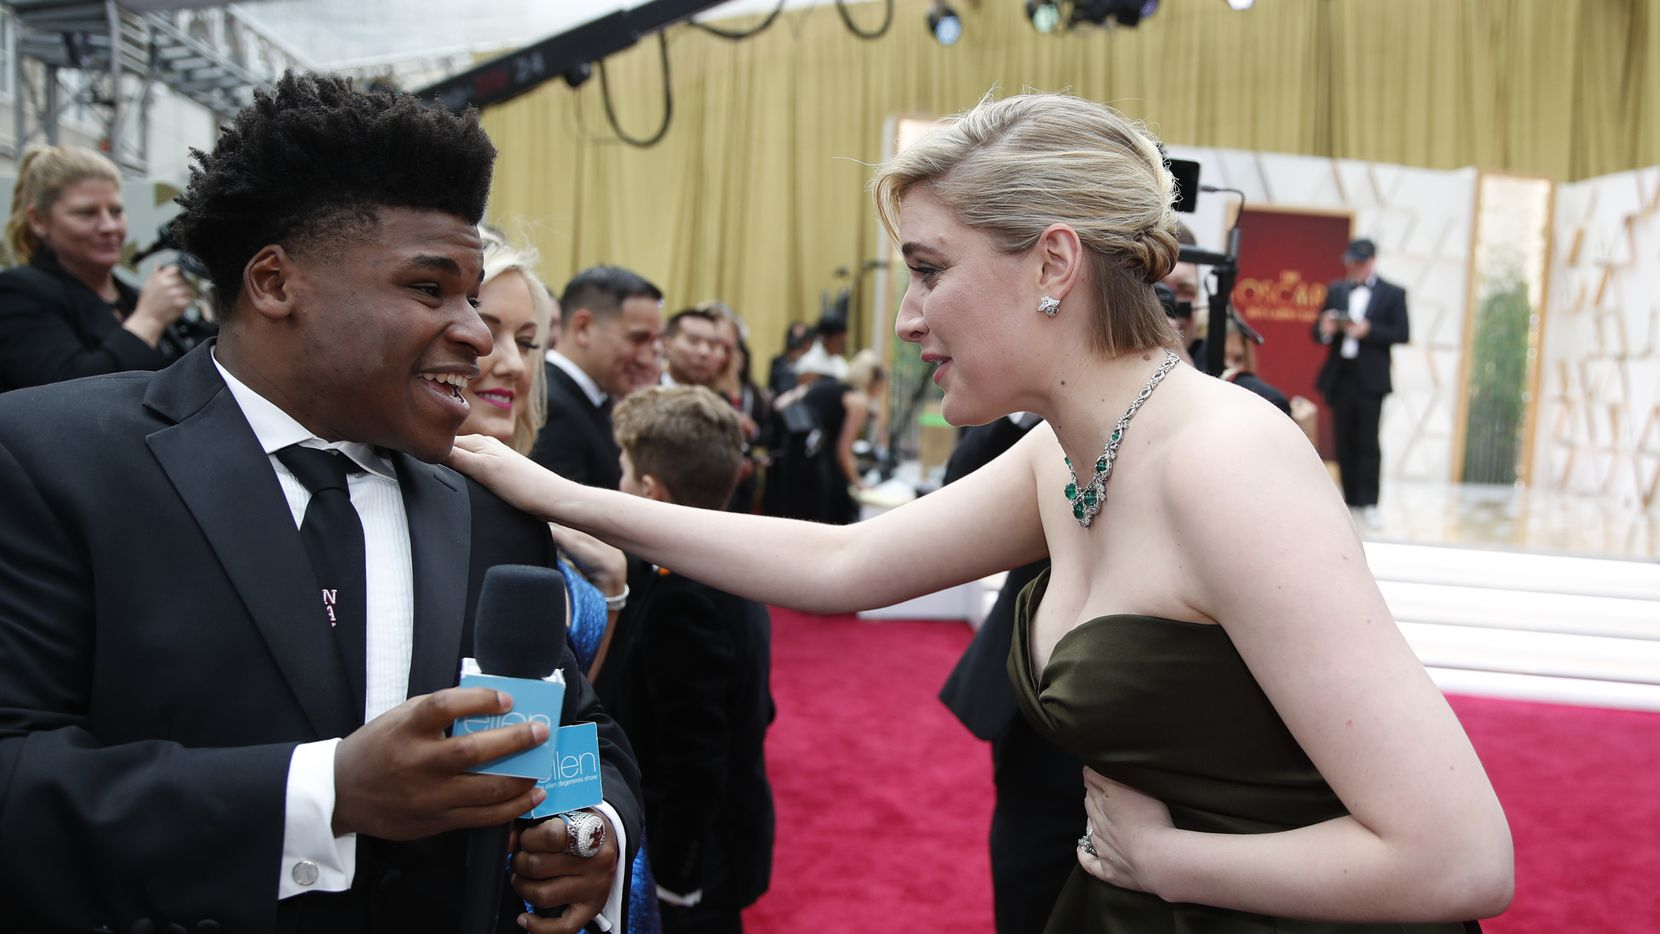 Greta Gerwig, right, talks to Jerry Harris on the red carpet at the Oscars on Sunday, Feb. 9, 2020, at the Dolby Theatre in Los Angeles.